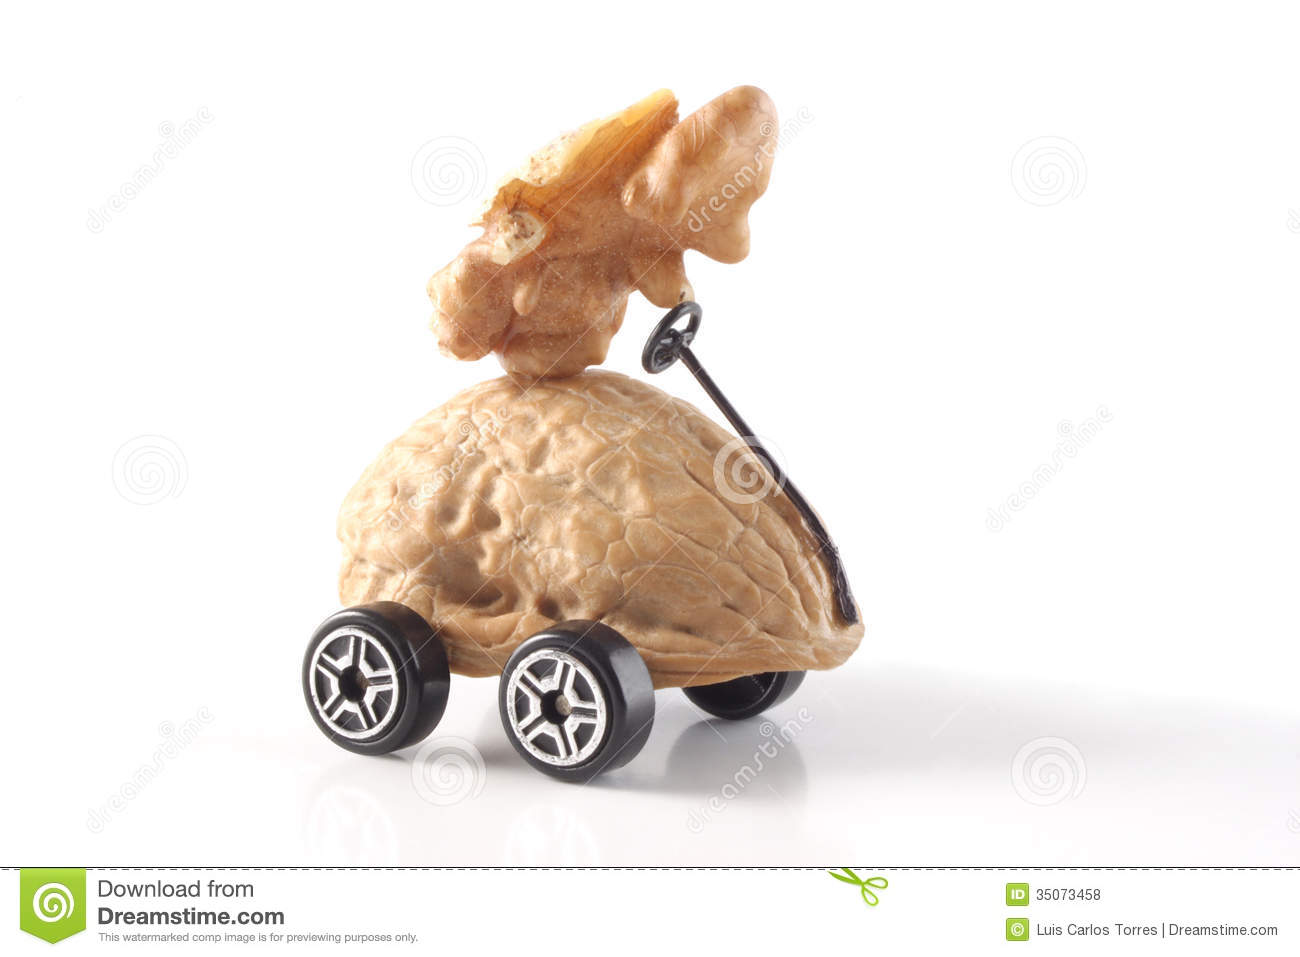 Driving Me Nuts Royalty Free Stock Photos - Image: 35073458